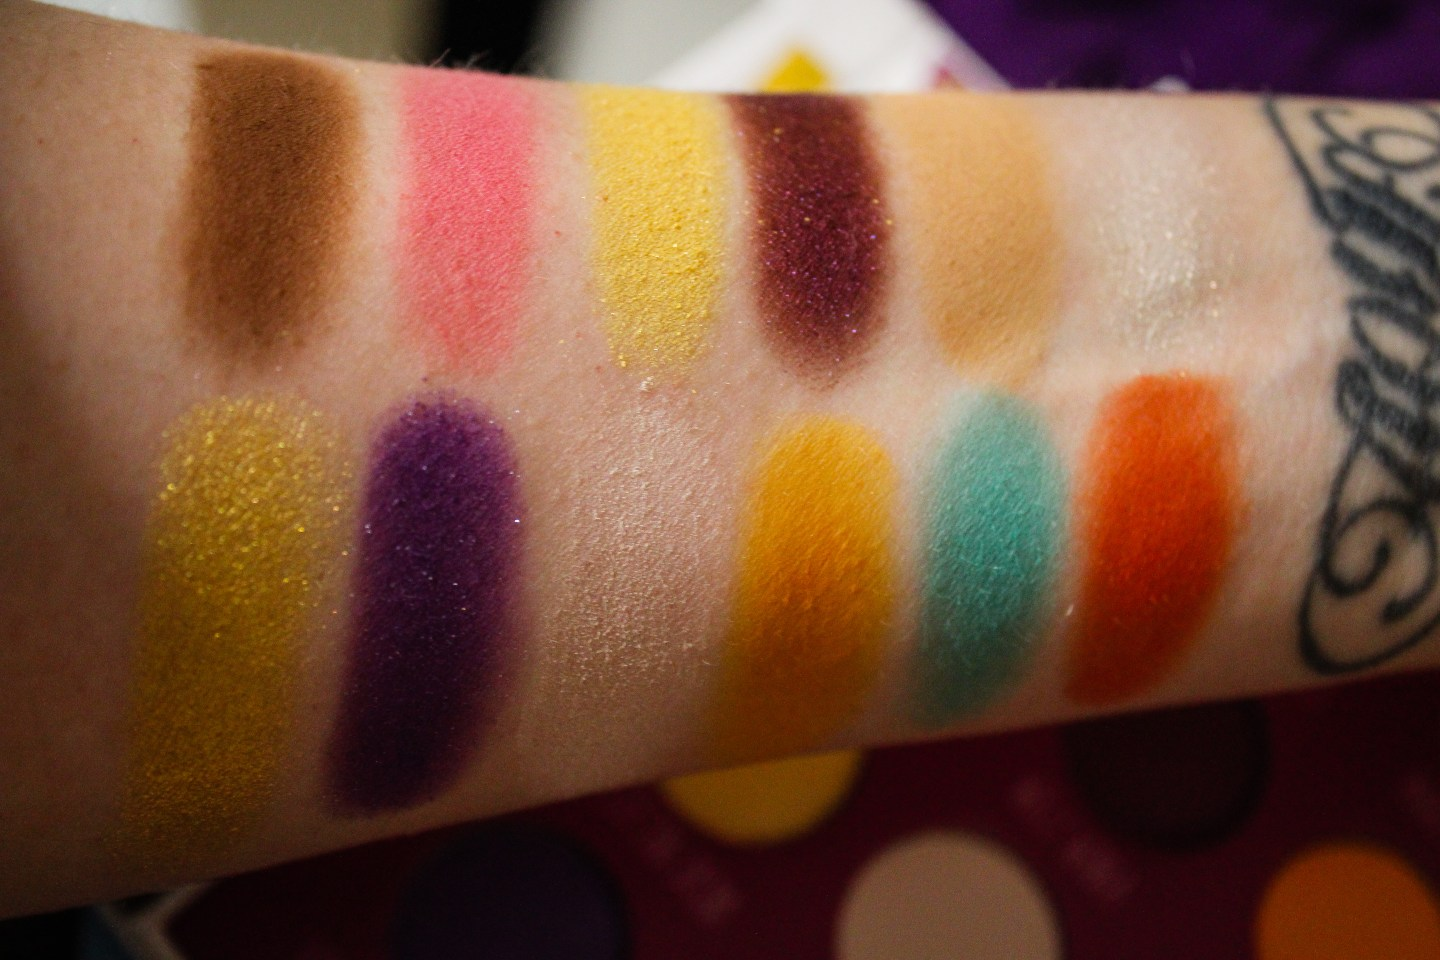 Storybook Cosmetics Charlie and the Chocolate Factory Swatches.jpg